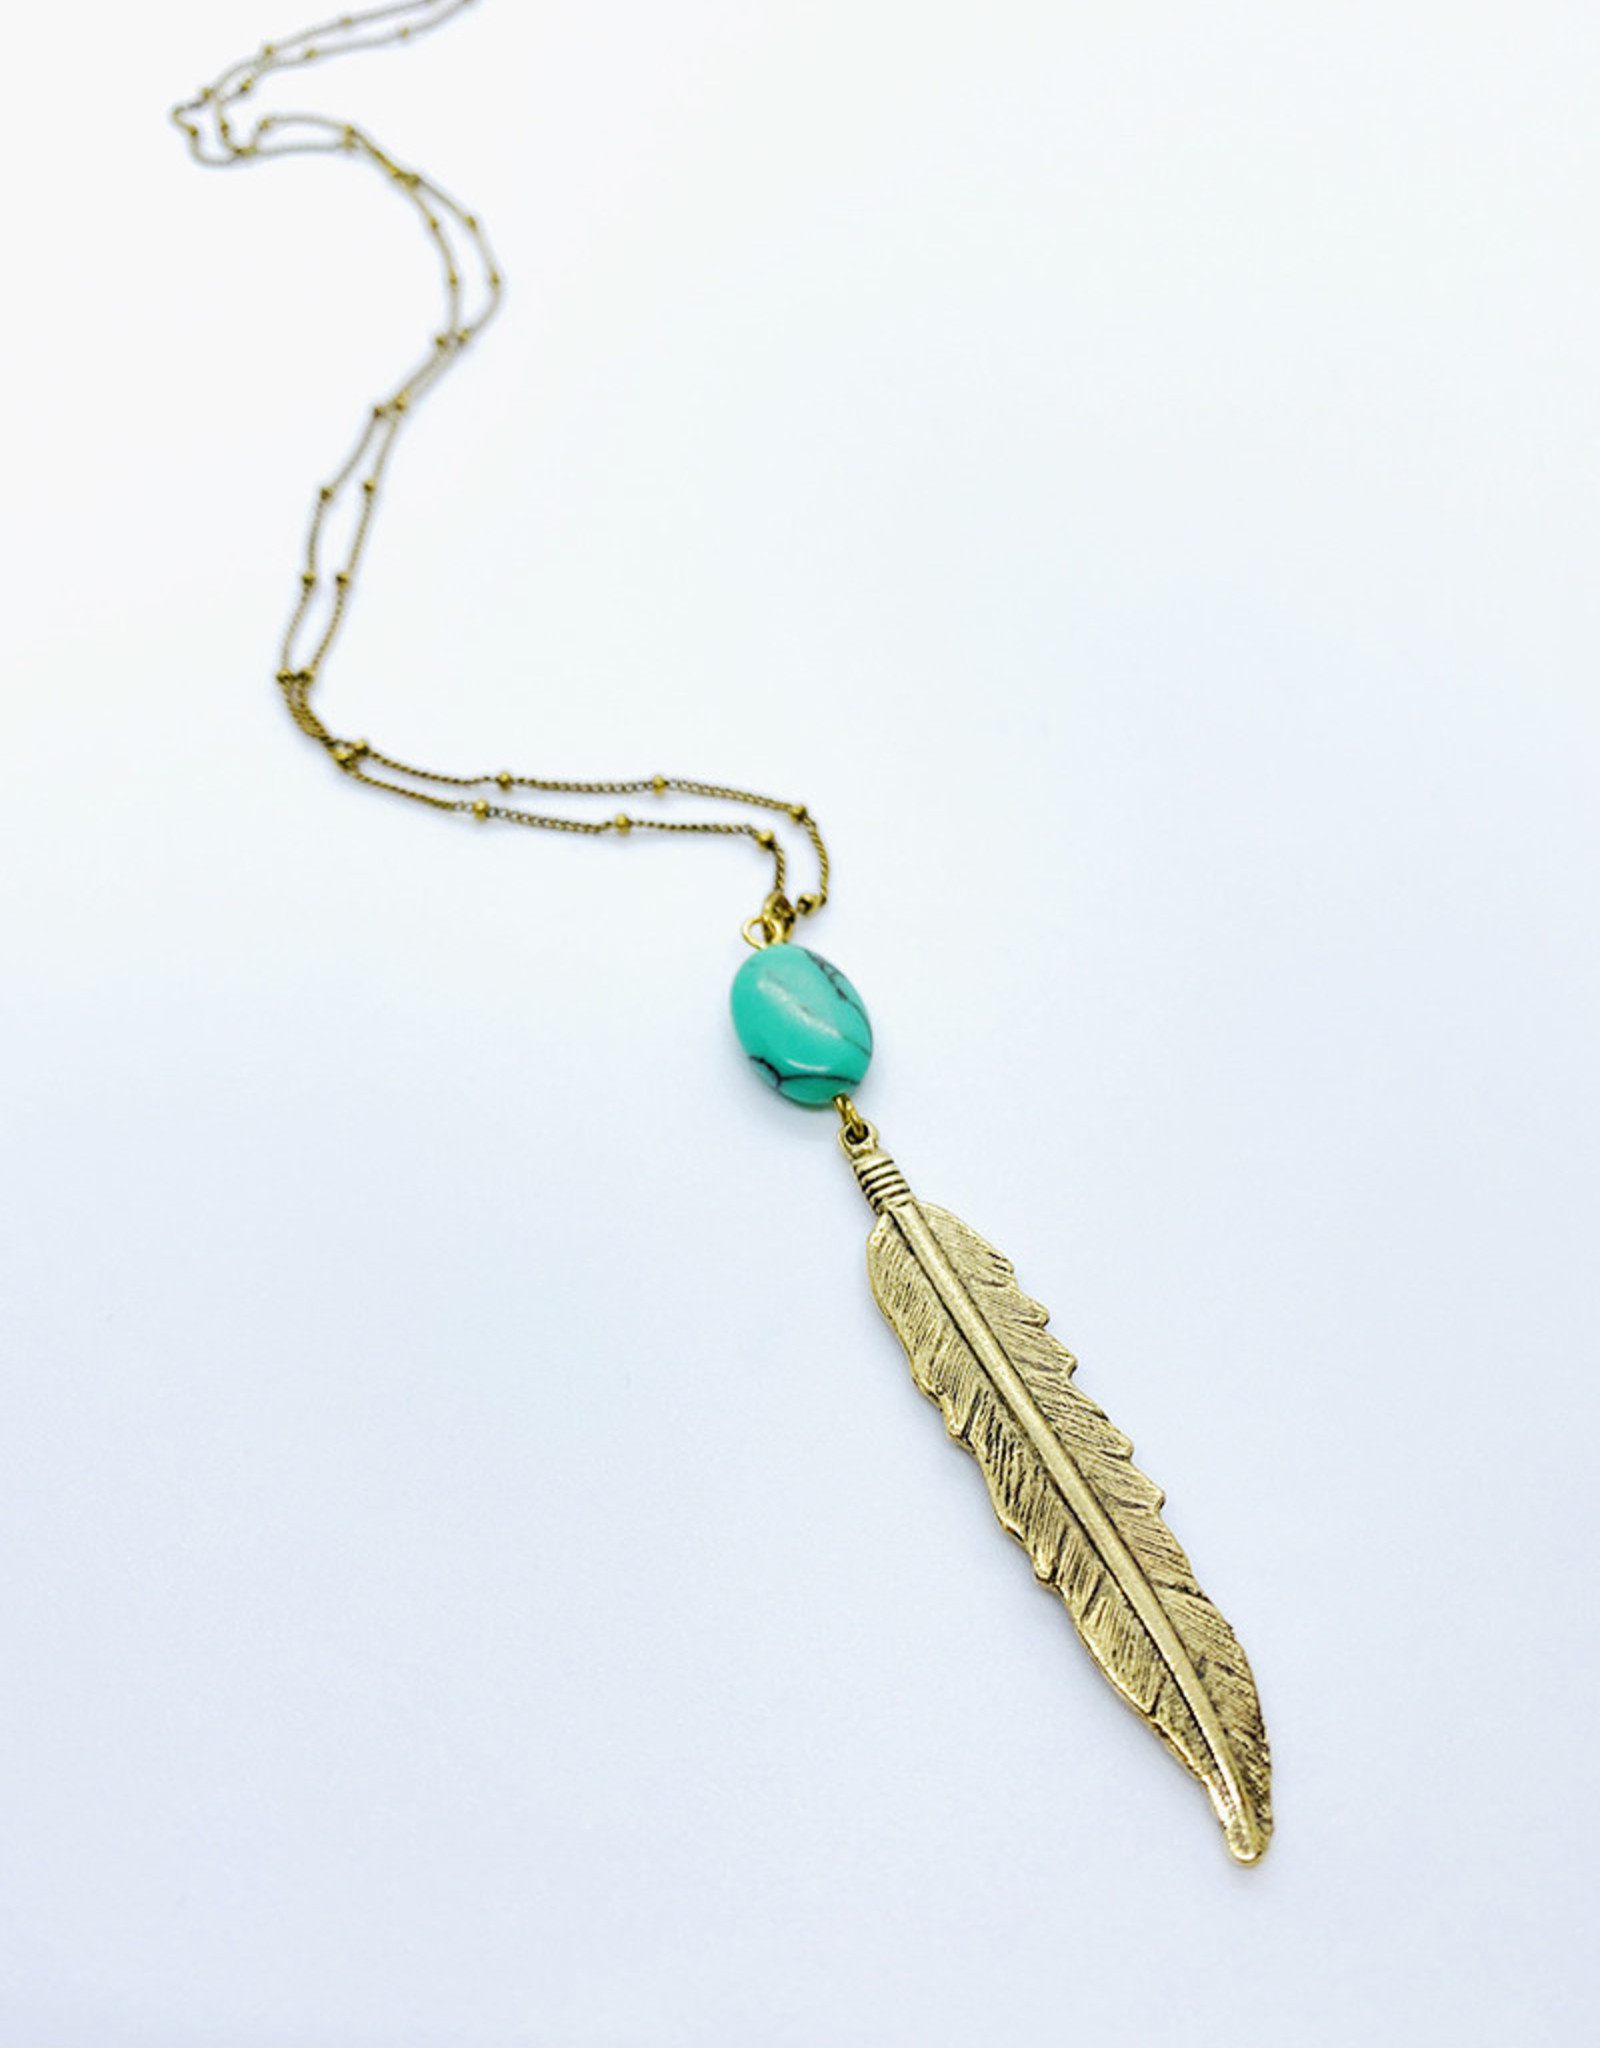 Tilly Doro Feather + Turquoise Necklace // Tillydoro